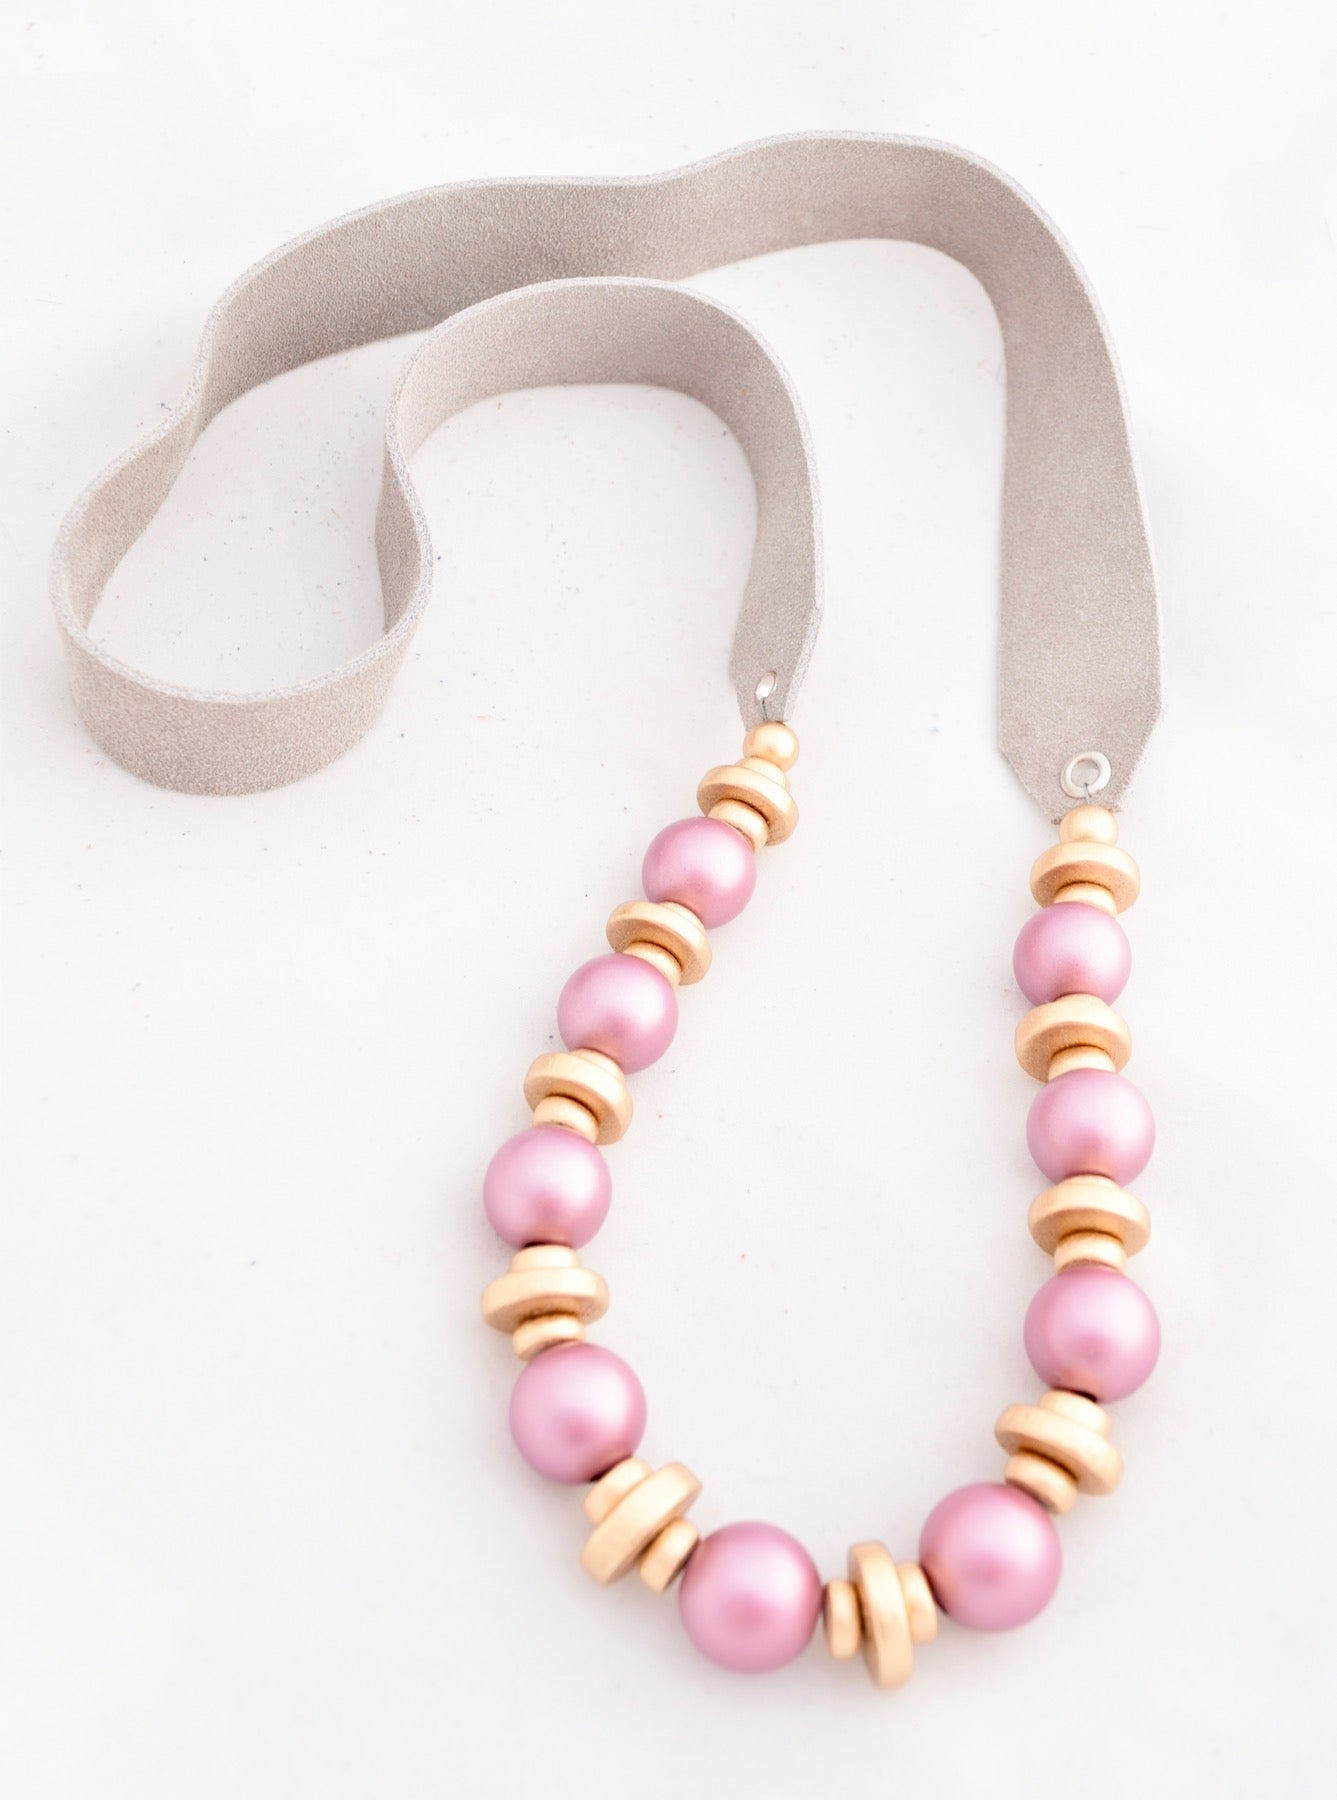 Laura Lavender Pearl and Gold Necklace on Gray Leather Strap